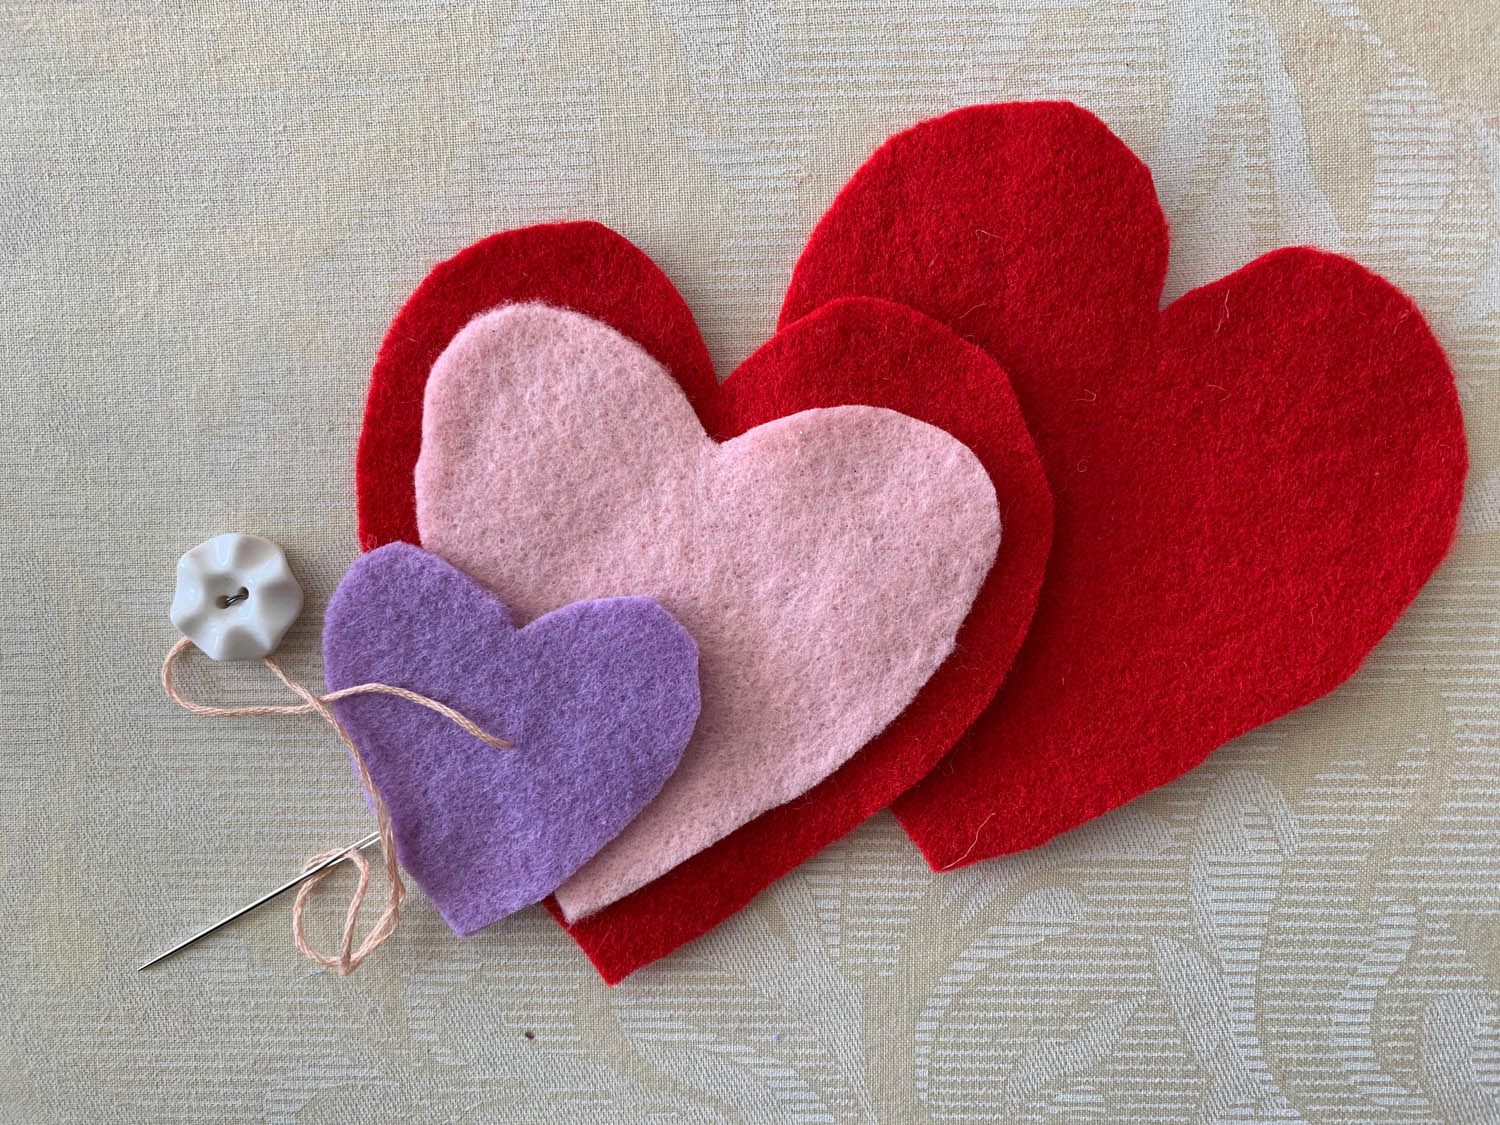 felt heart shapes in purple pink and red with button and embroidery needle